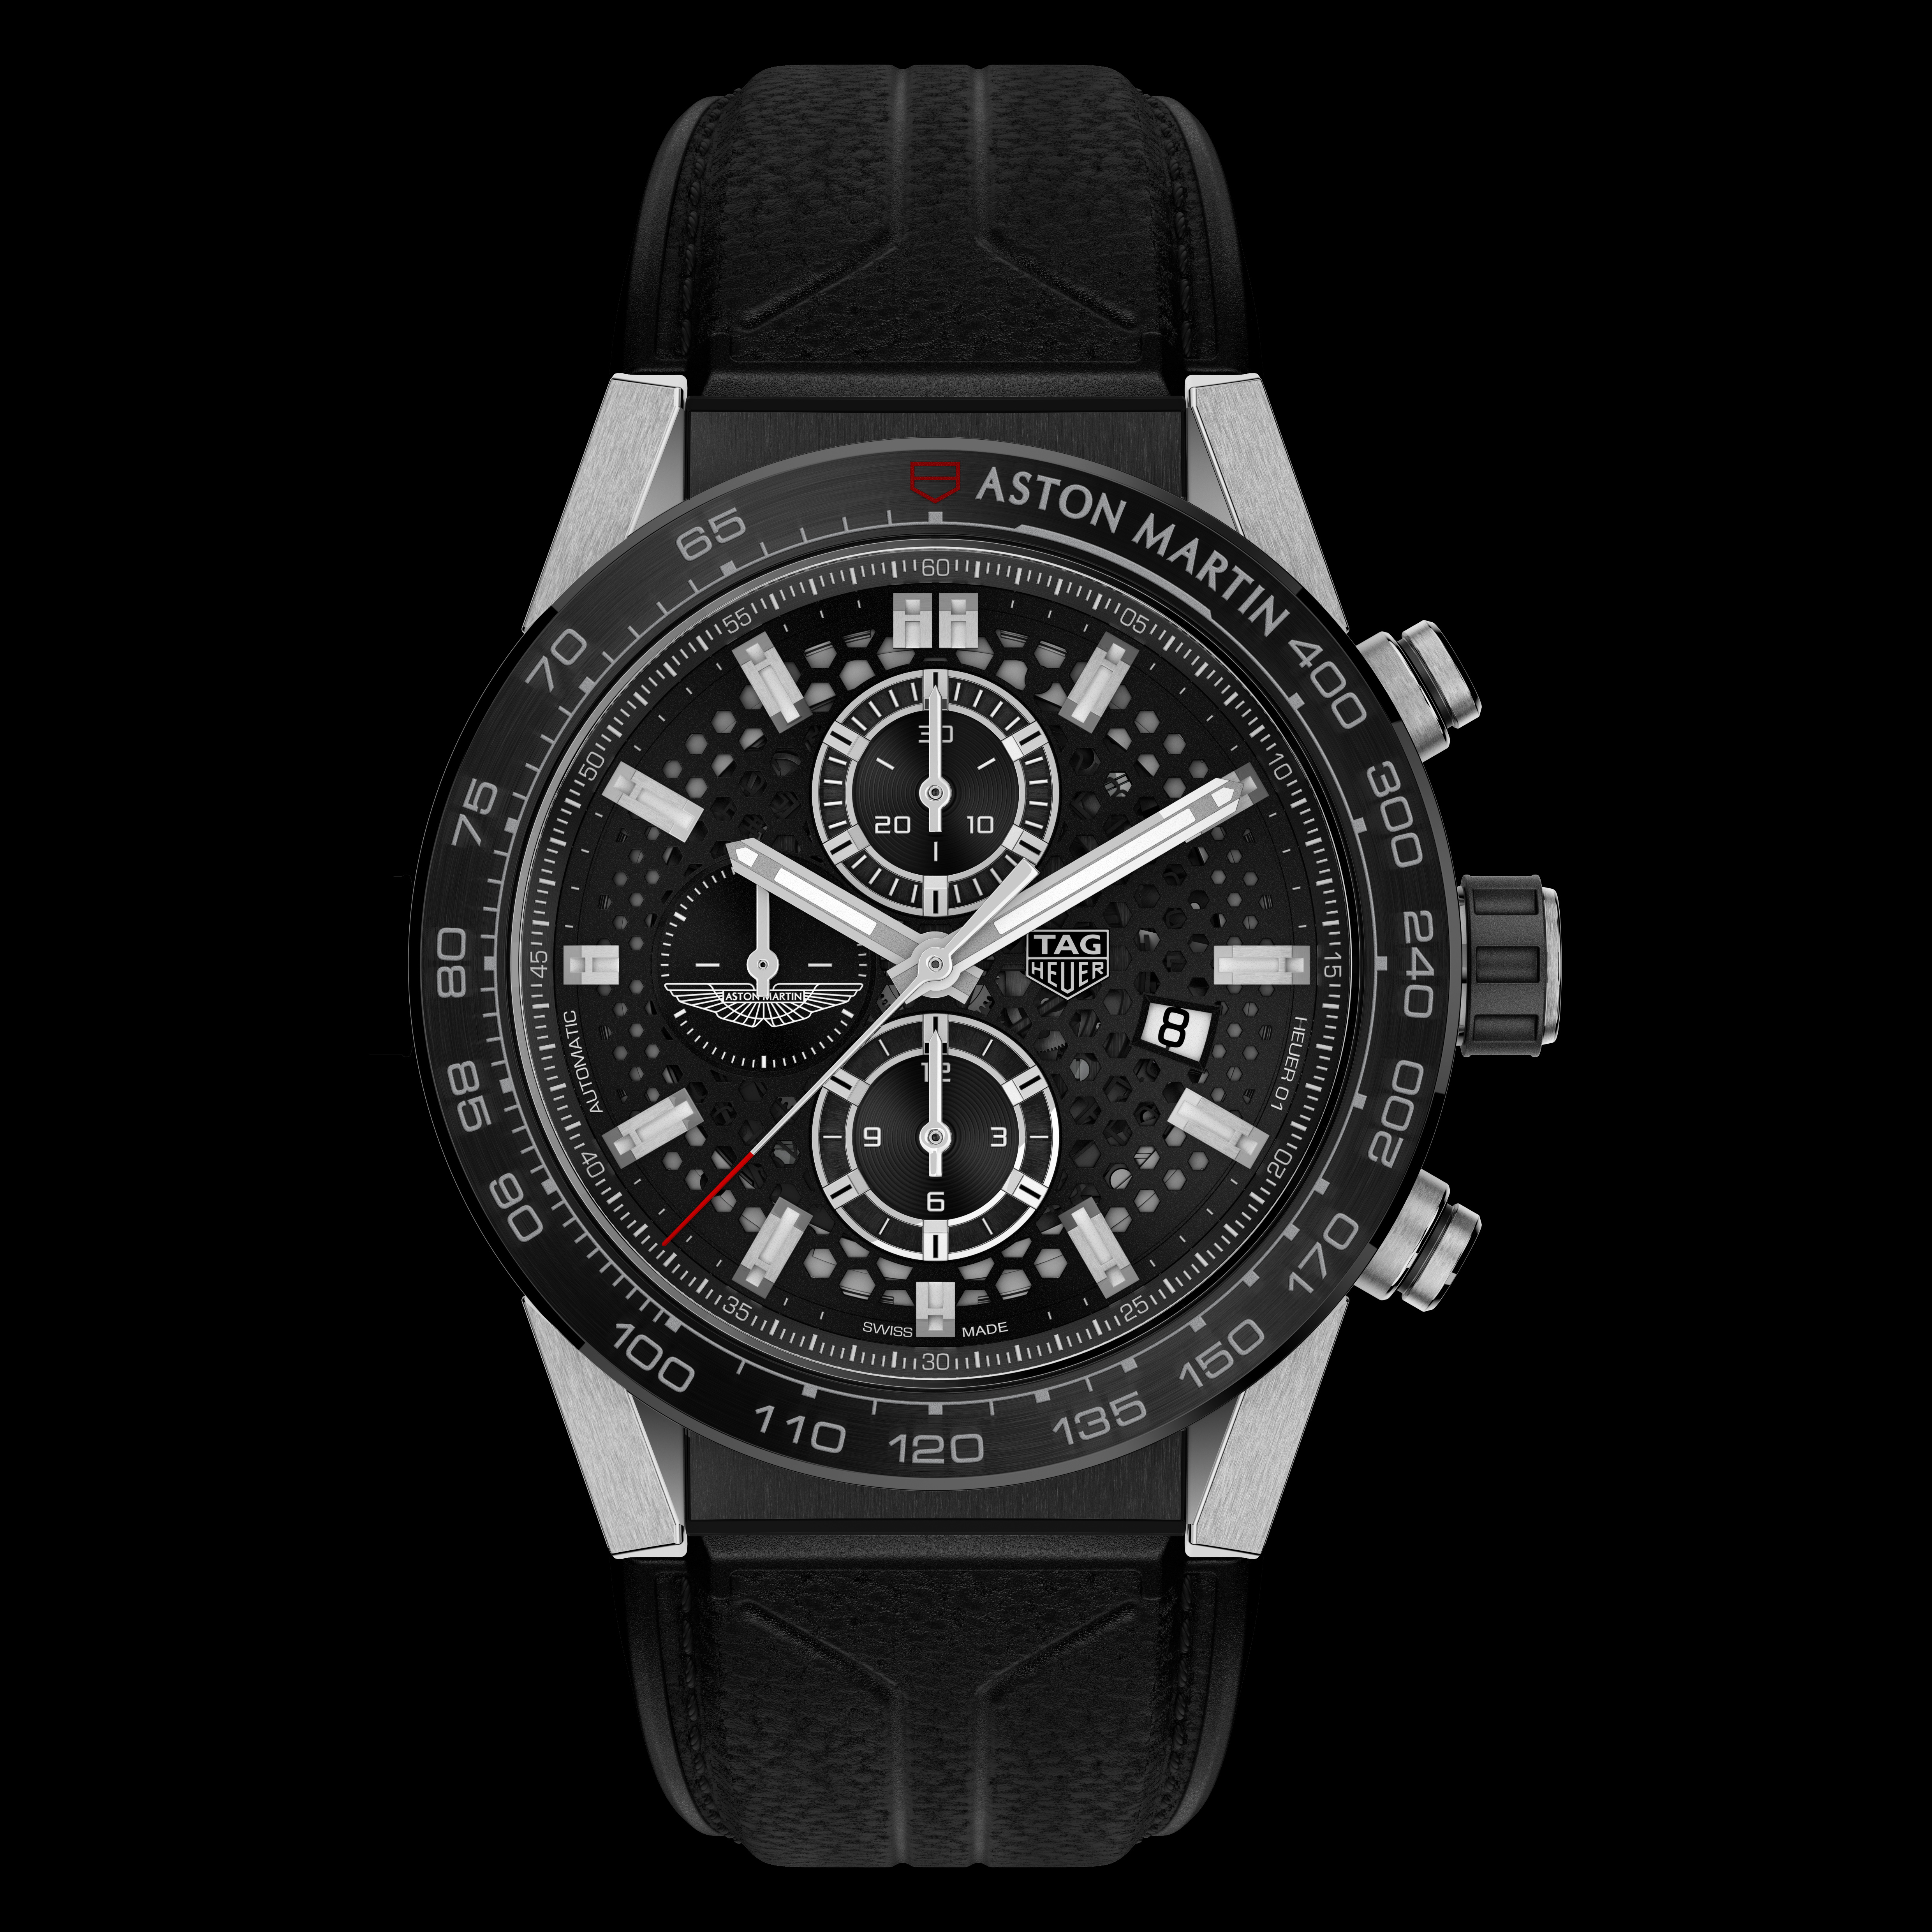 TAG Heuer Carrera Heuer 01 Aston Martin watch has design details reflective of sports cars.